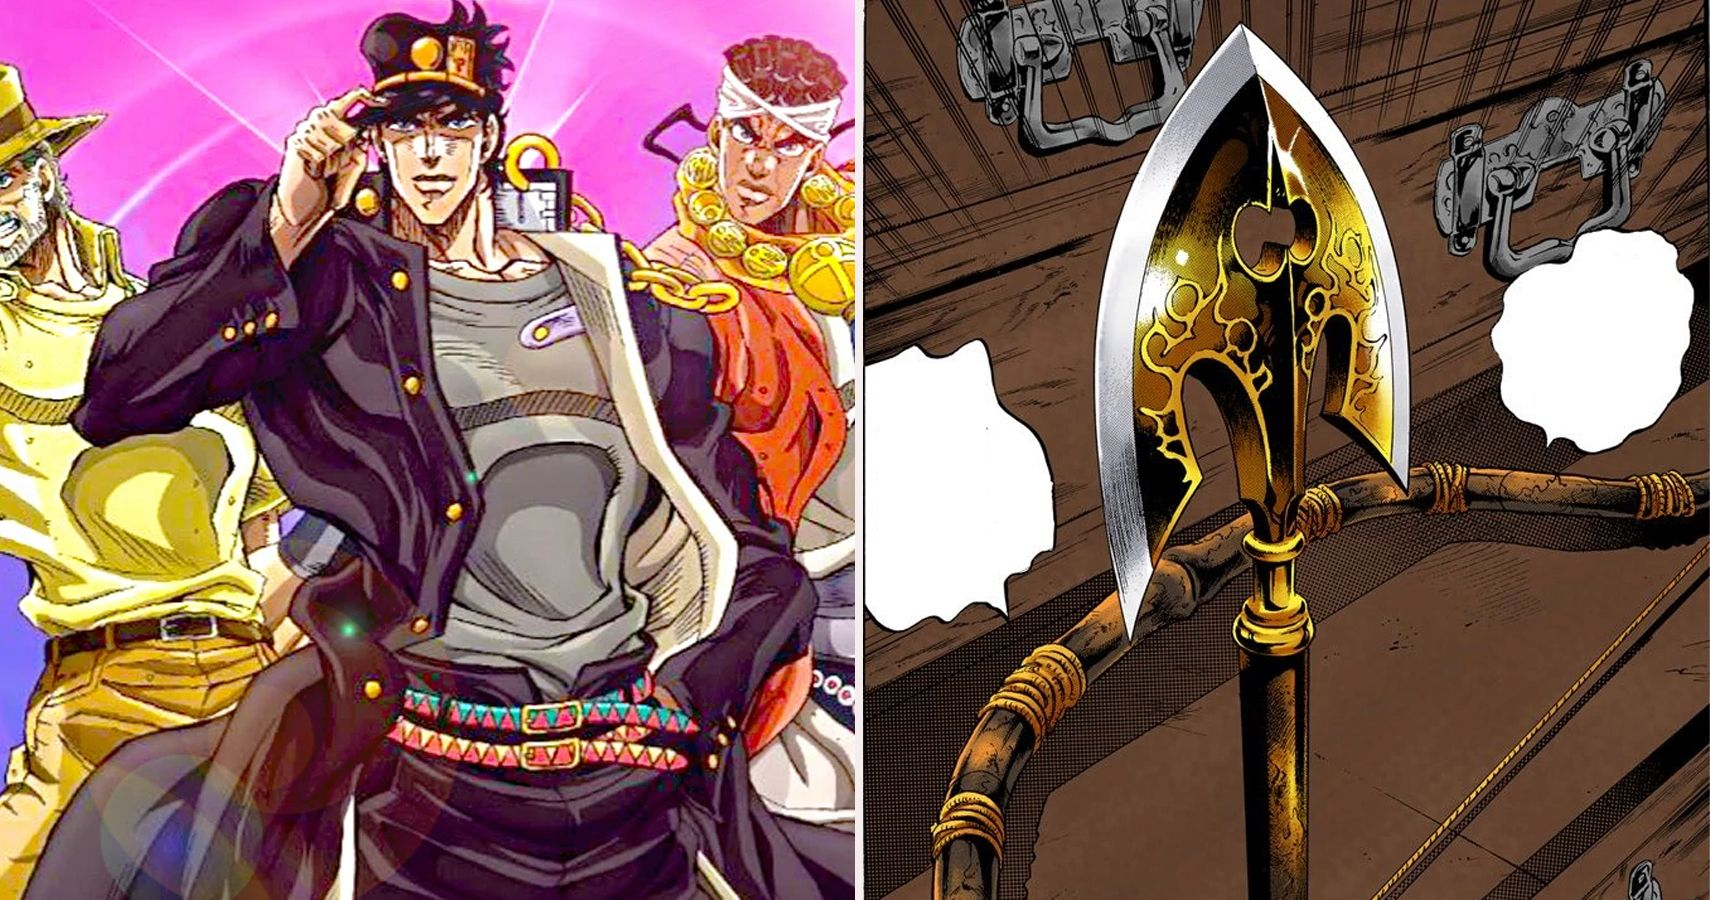 Jojo S Bizarre Adventure 10 Rules You Didn T Know About The Stand Arrow Check out our jojo requiem arrow selection for the very best in unique or custom, handmade pieces from our memorabilia shops. rules you didn t know about the stand arrow